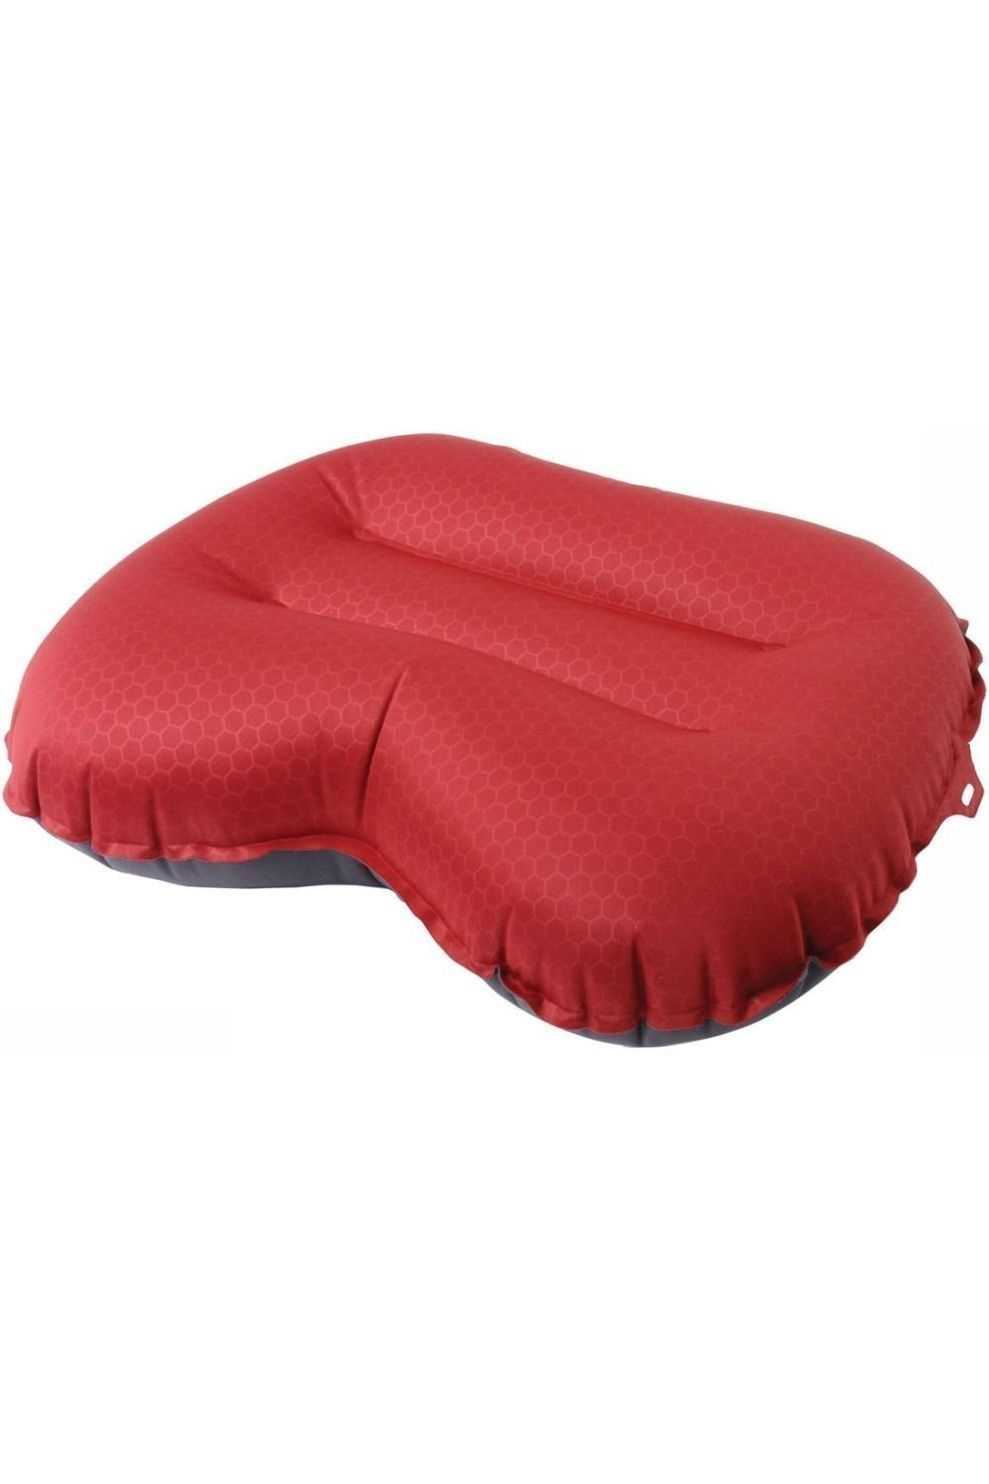 Exped Kussen Air M - Rood/Grijs